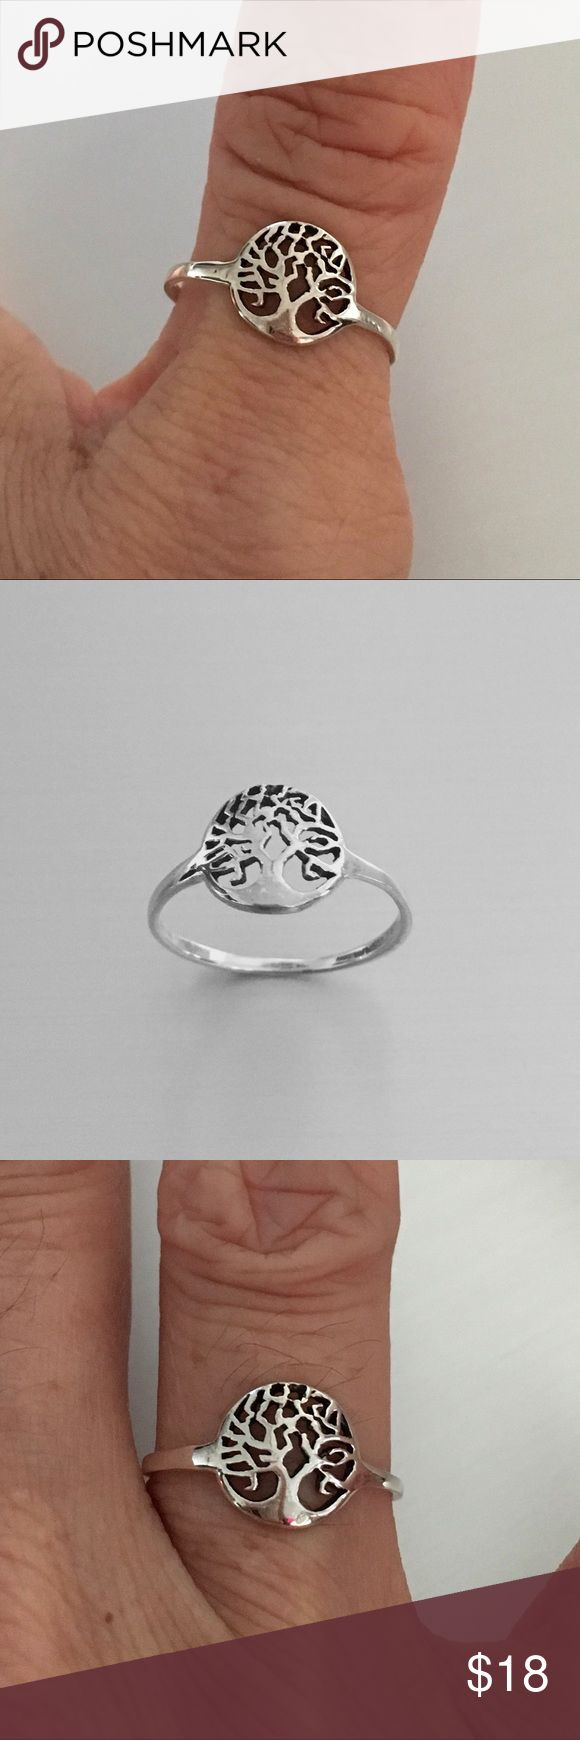 Sterling Silver Tiny Tree Of Life Ring Sterling Silver Tiny Tree of Life Ring, Pinky Ring, Midi Ring, Index Ring, Thumb Ring, 925 Sterling Silver, Face Height 10 mm (0.39 inch) Jewelry Rings